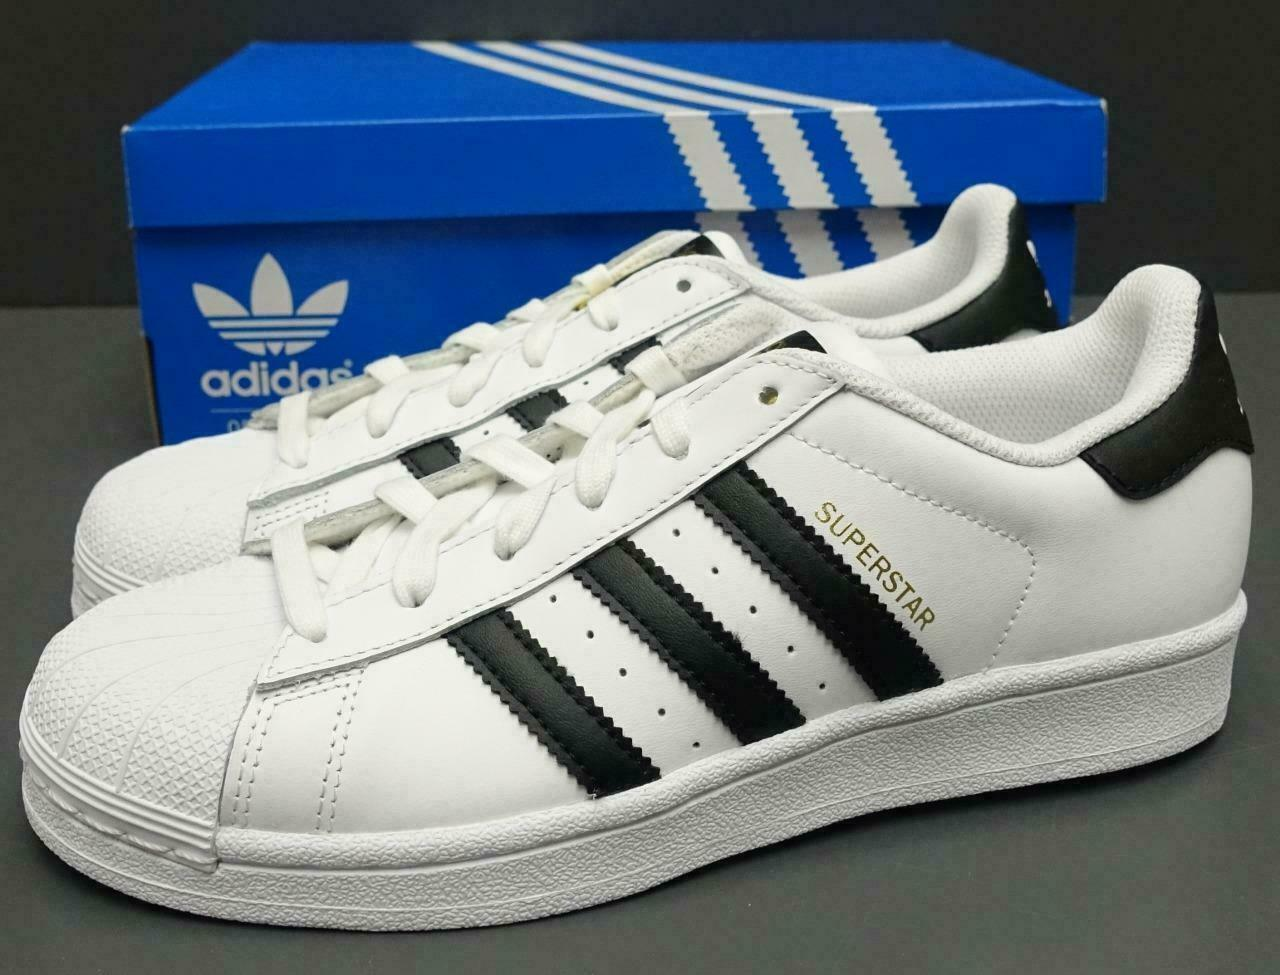 Adidas Originals Superstar Shoes NEW AUTHENTIC White Black C77153 Womens Sizes